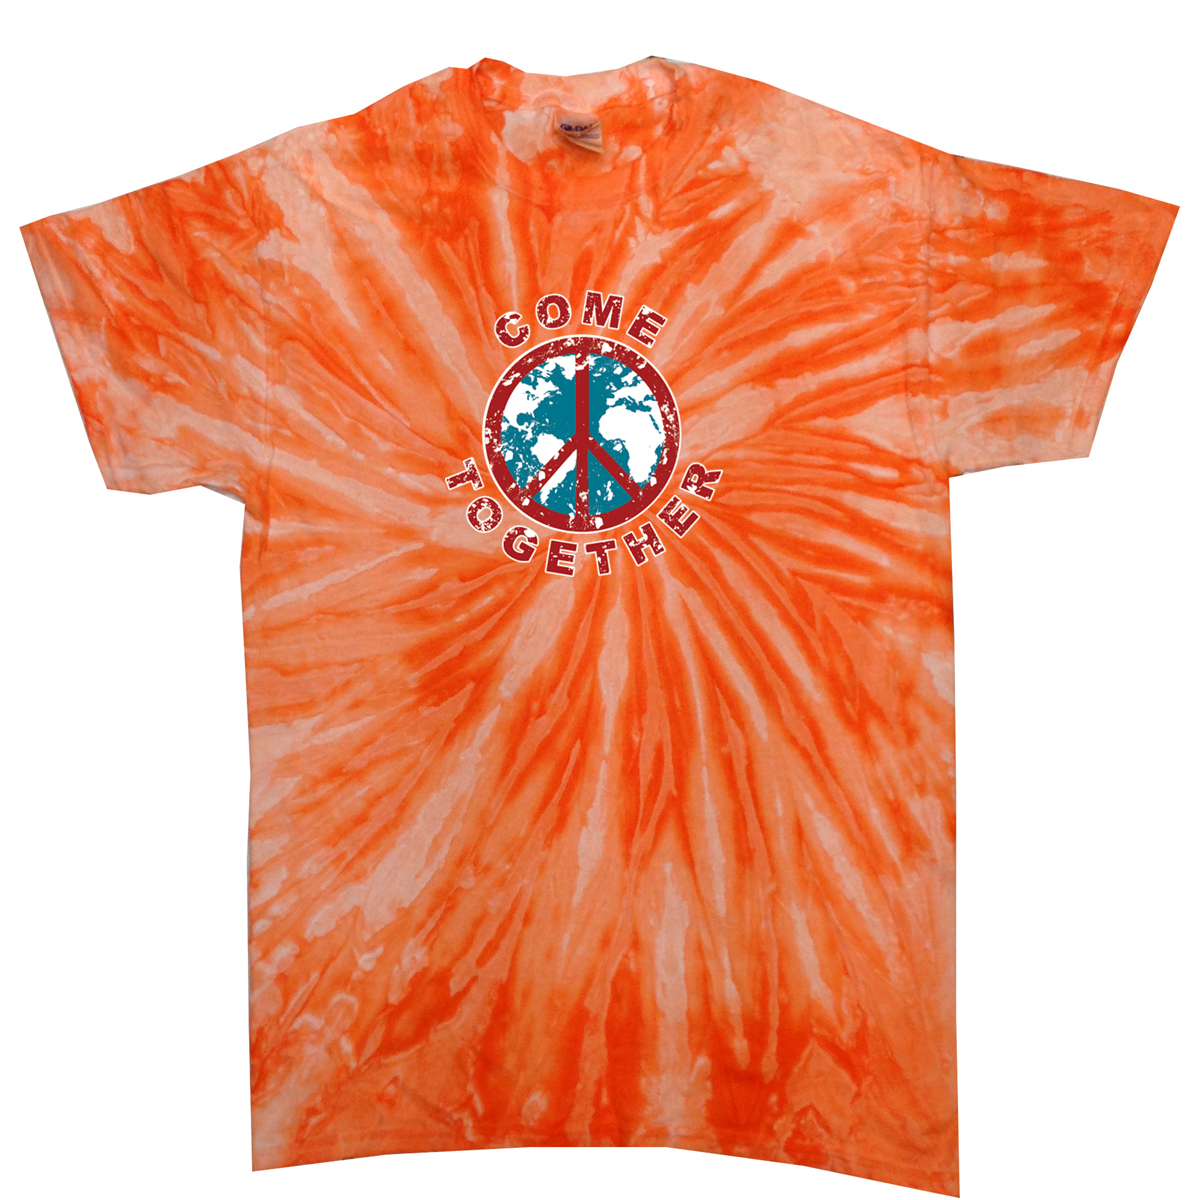 Kids peace tie dye shirt come together orange twist youth for Tie dye printed shirts